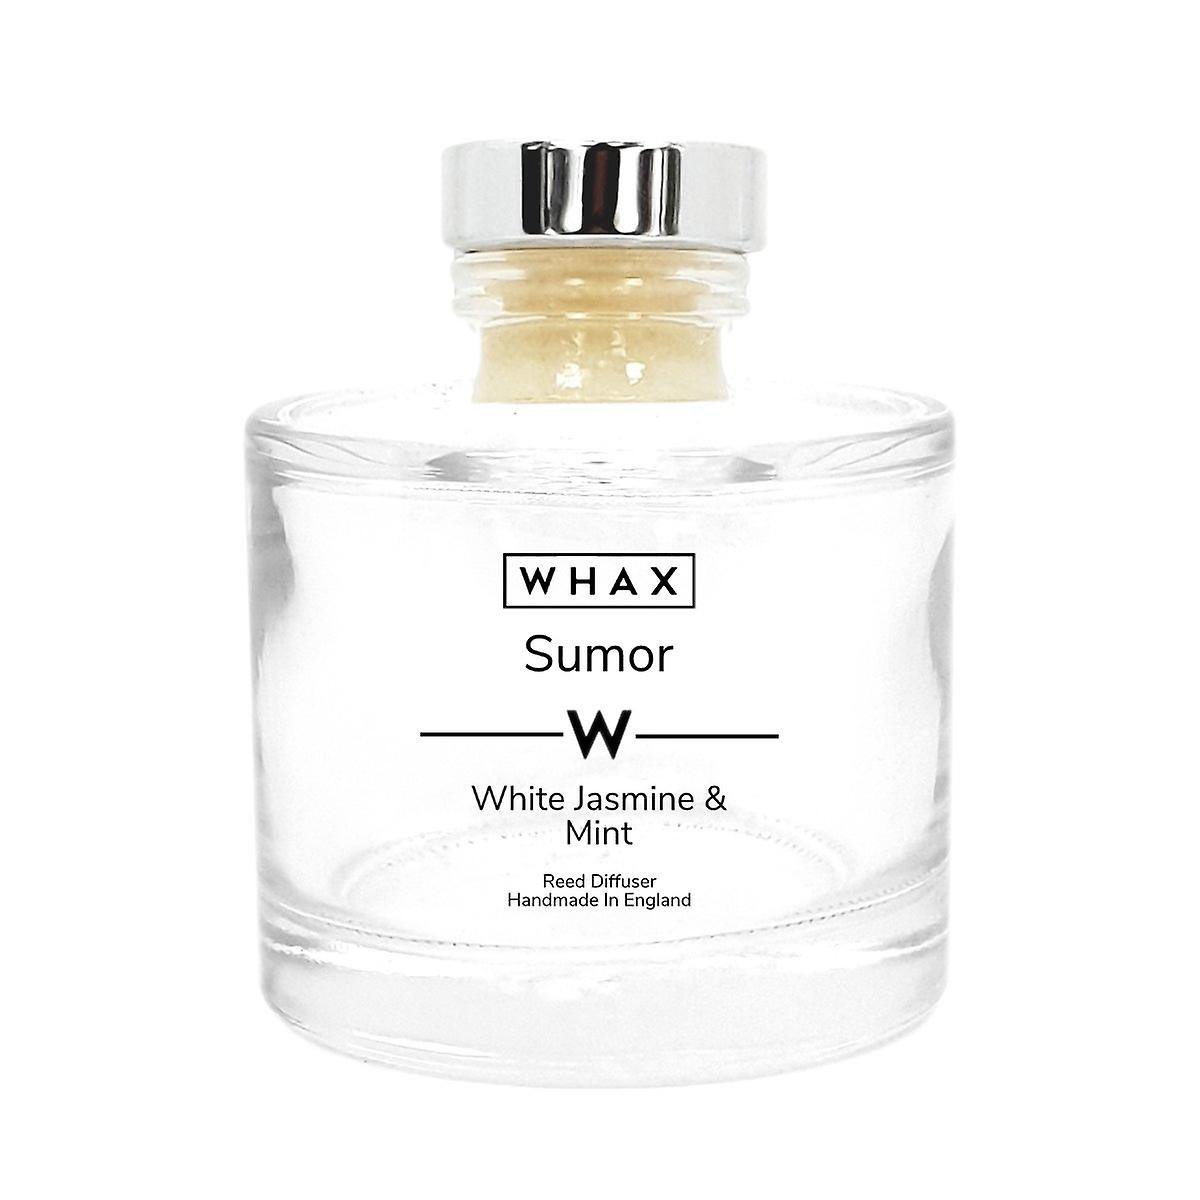 White jasmine & mint reed diffuser